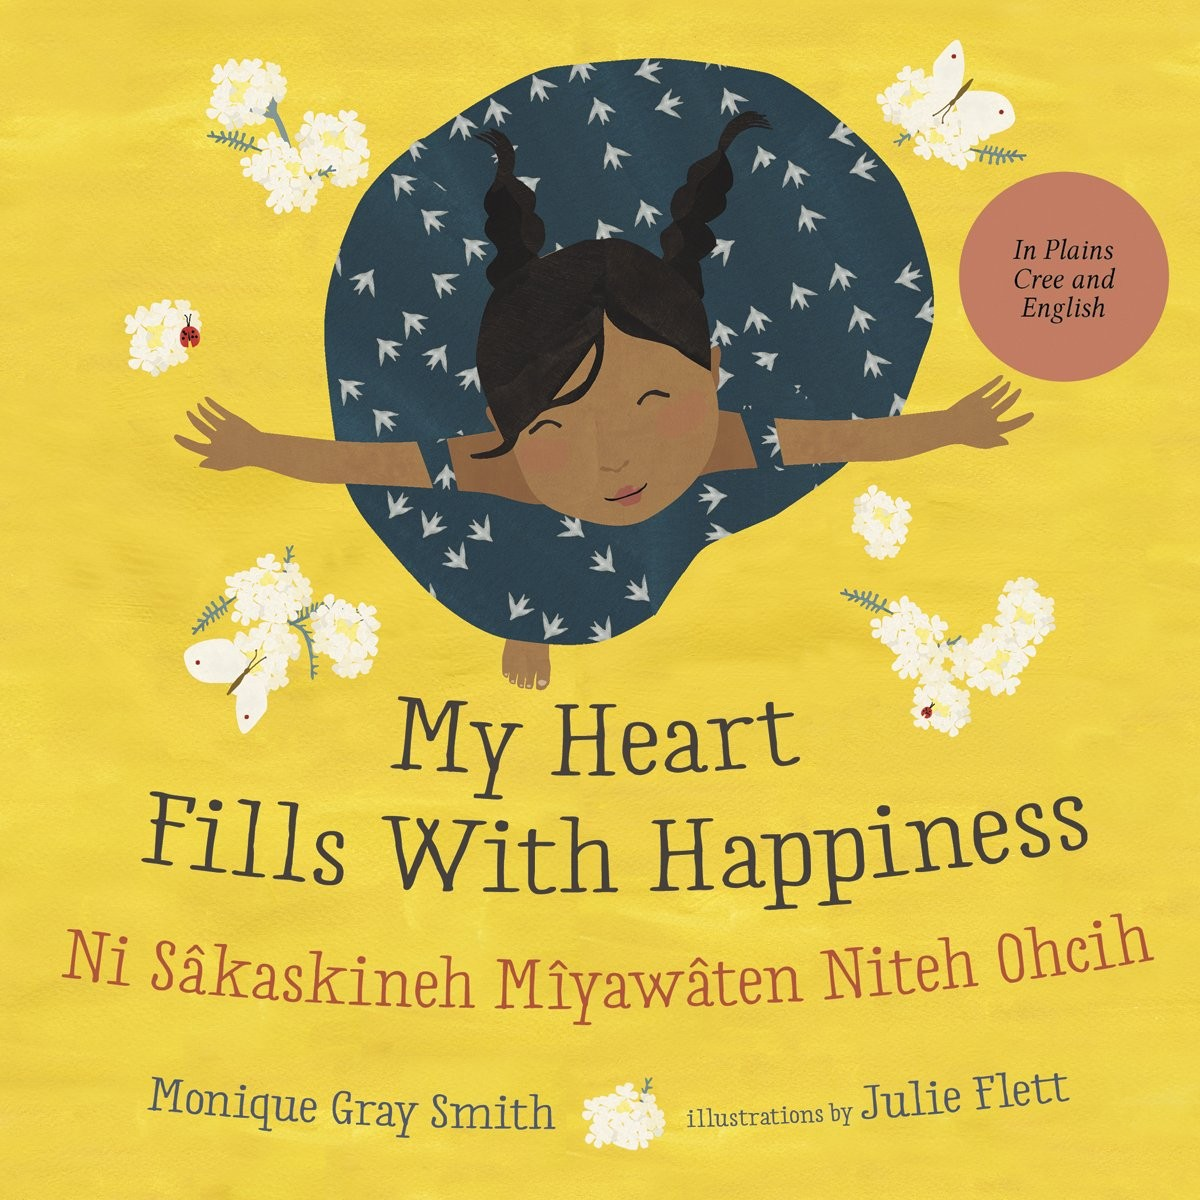 My Heart Fills With Happiness / Ni Sâkaskineh Mîyawâten Niteh Ohcih (English/Plains Cree)